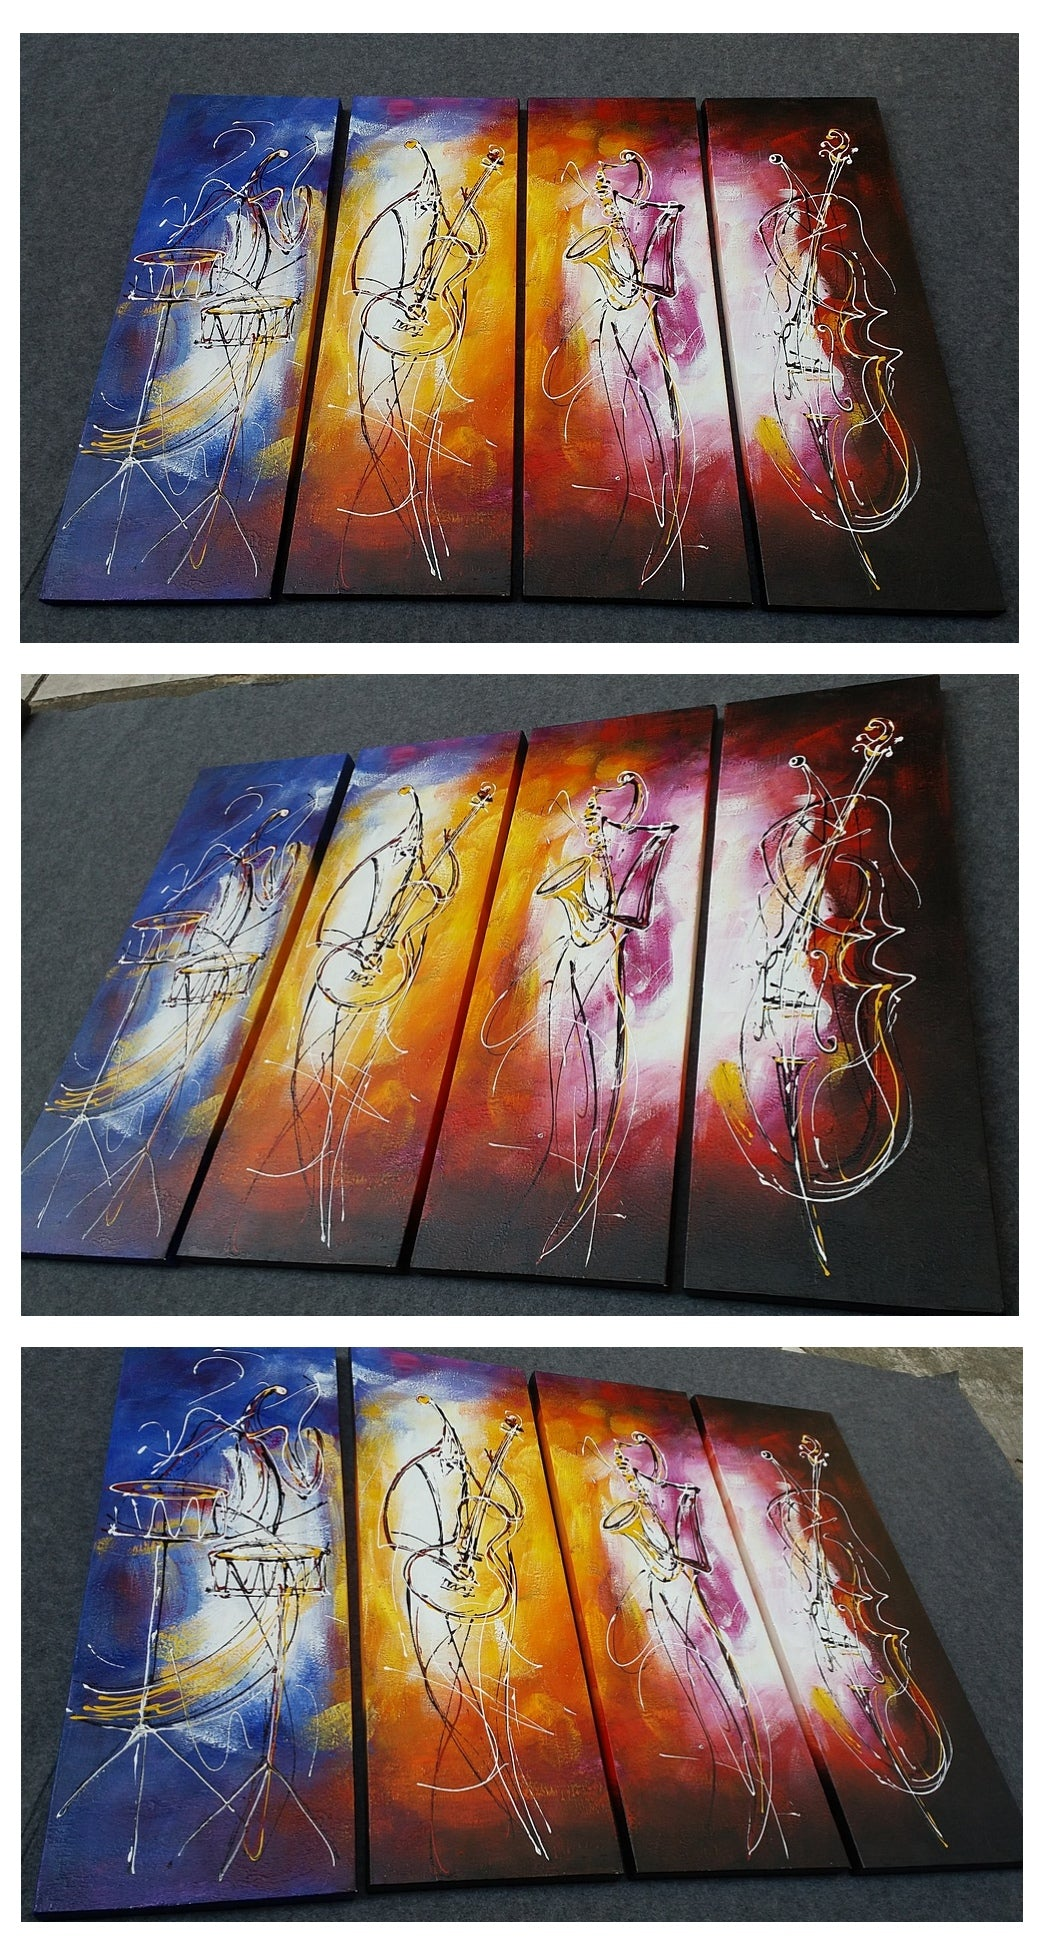 4 Piece Wall Art, Music Player Painting, Extra Large Canvas Painting, Acrylic Artwork